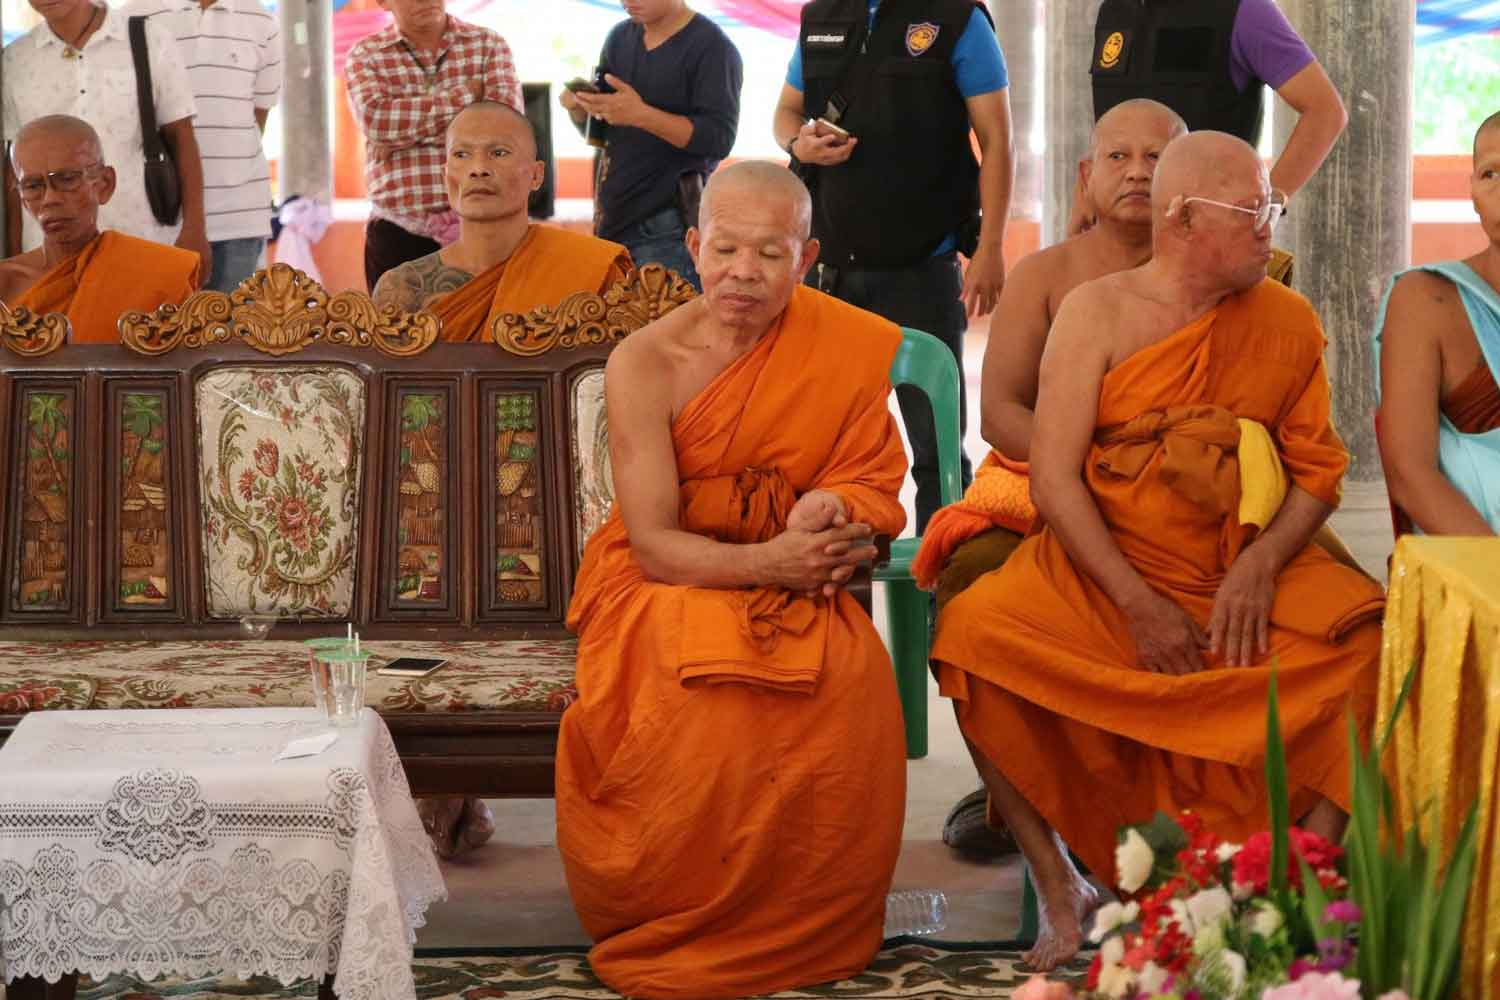 Phra Khru Sangkharakwinai Inthawinyo (seated right), 51, abbot of Wat Intharam in Tha Muang district of Kanchanaburi at a meeting on Tuesday with local monks, residents and officials, where he was accused of sexually abusing a 13-year-old novice. Phra Natthee Sirijantho, who reportedly rescued the young victim, sits beside him on the left. (Photo by Piyarat Chongcharoen)